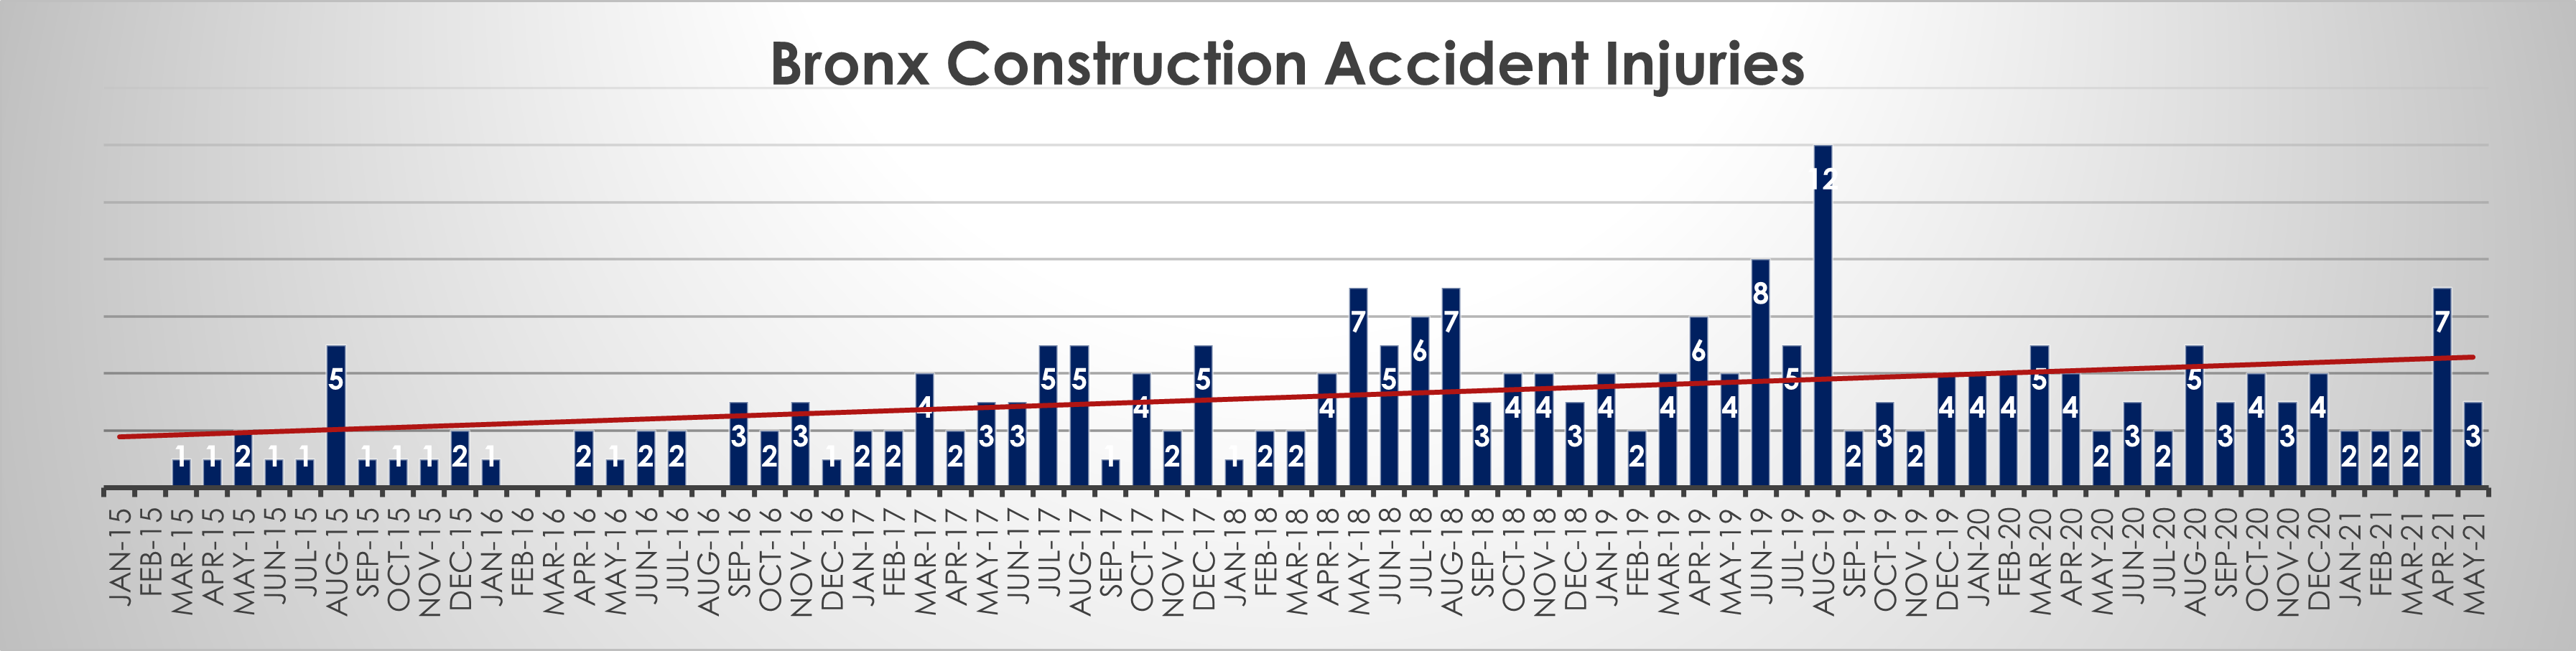 Construction accident injuries in the Bronx May 21